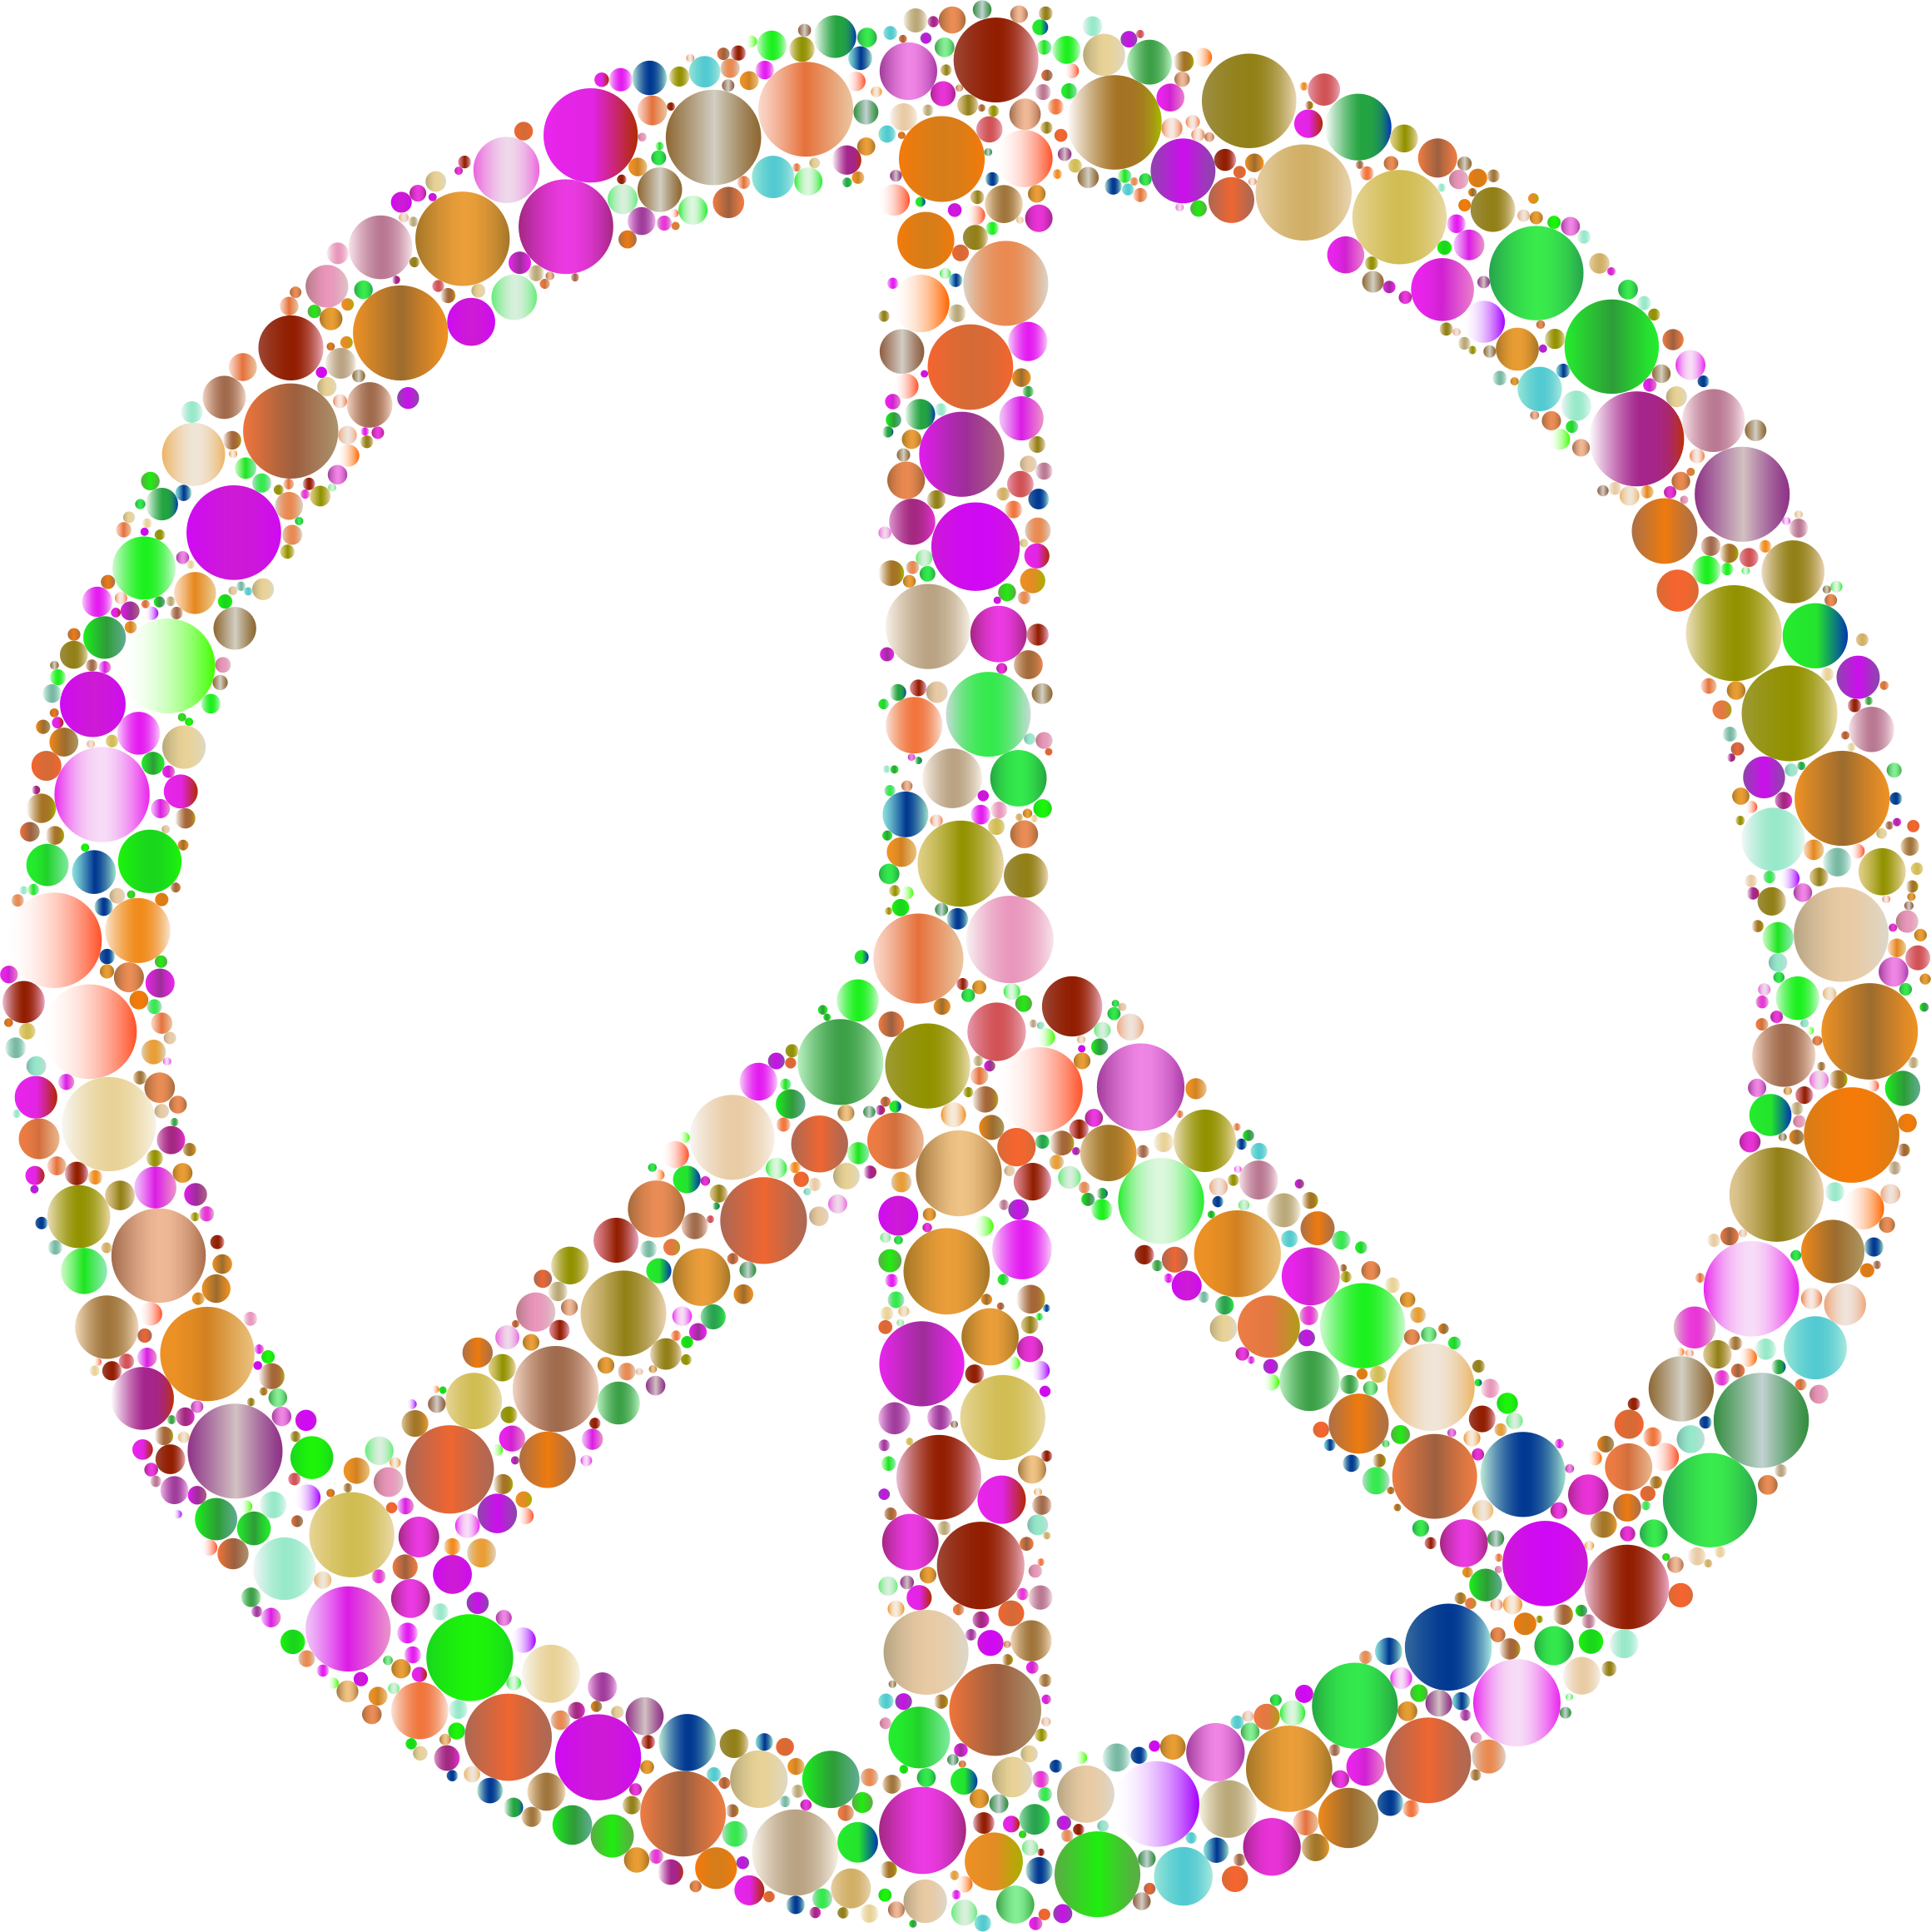 Colorful Circles Peace Sign 8 by GDJ